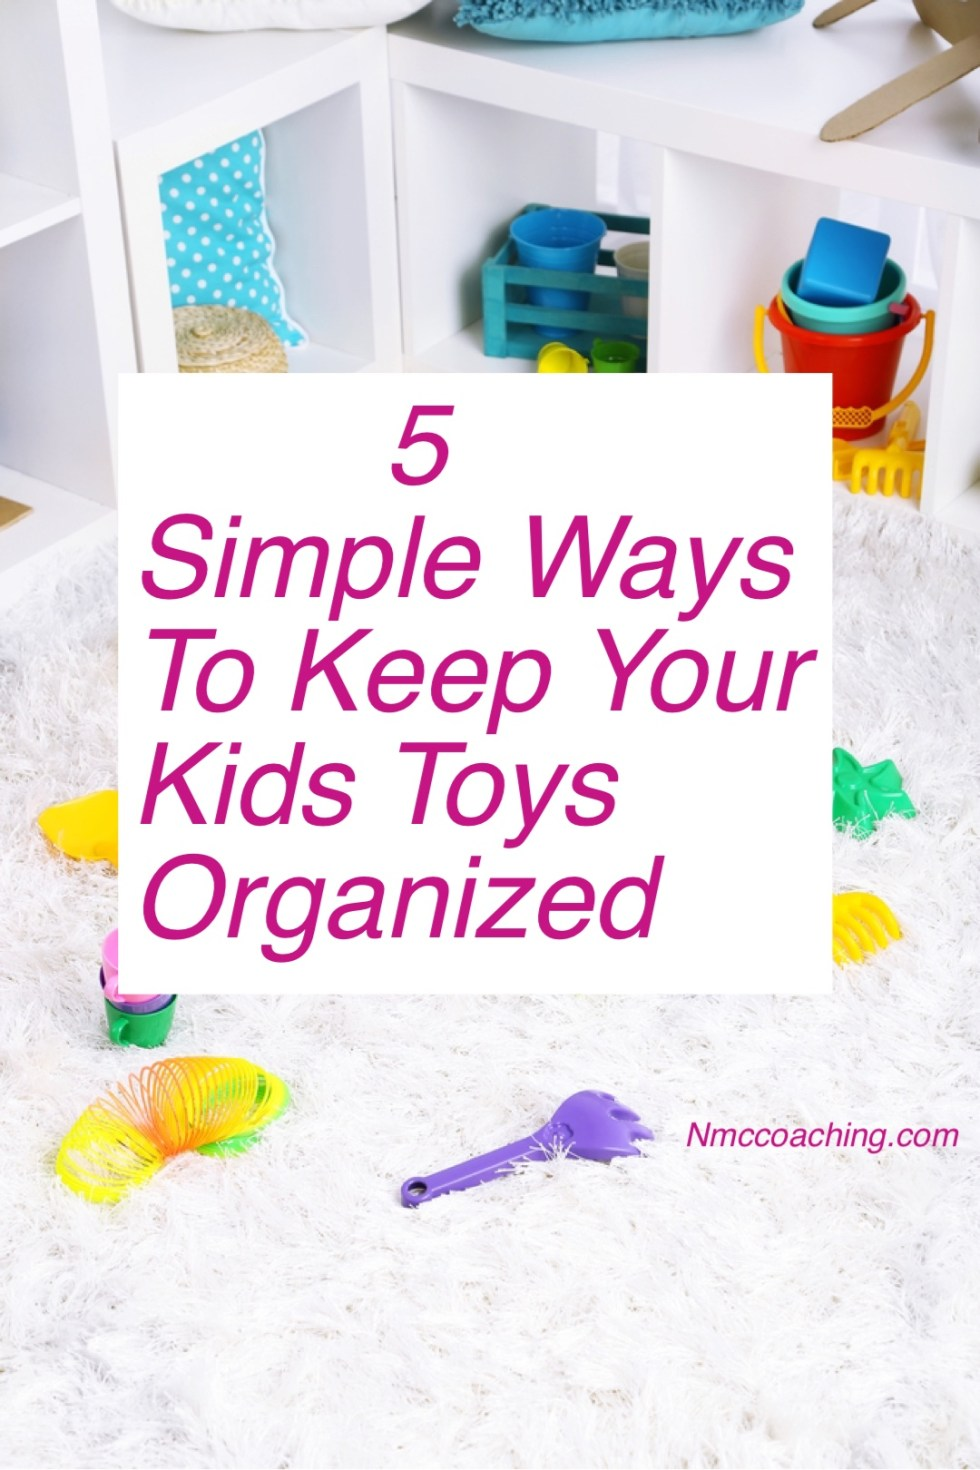 5 simple ways to keep your kids toys organized